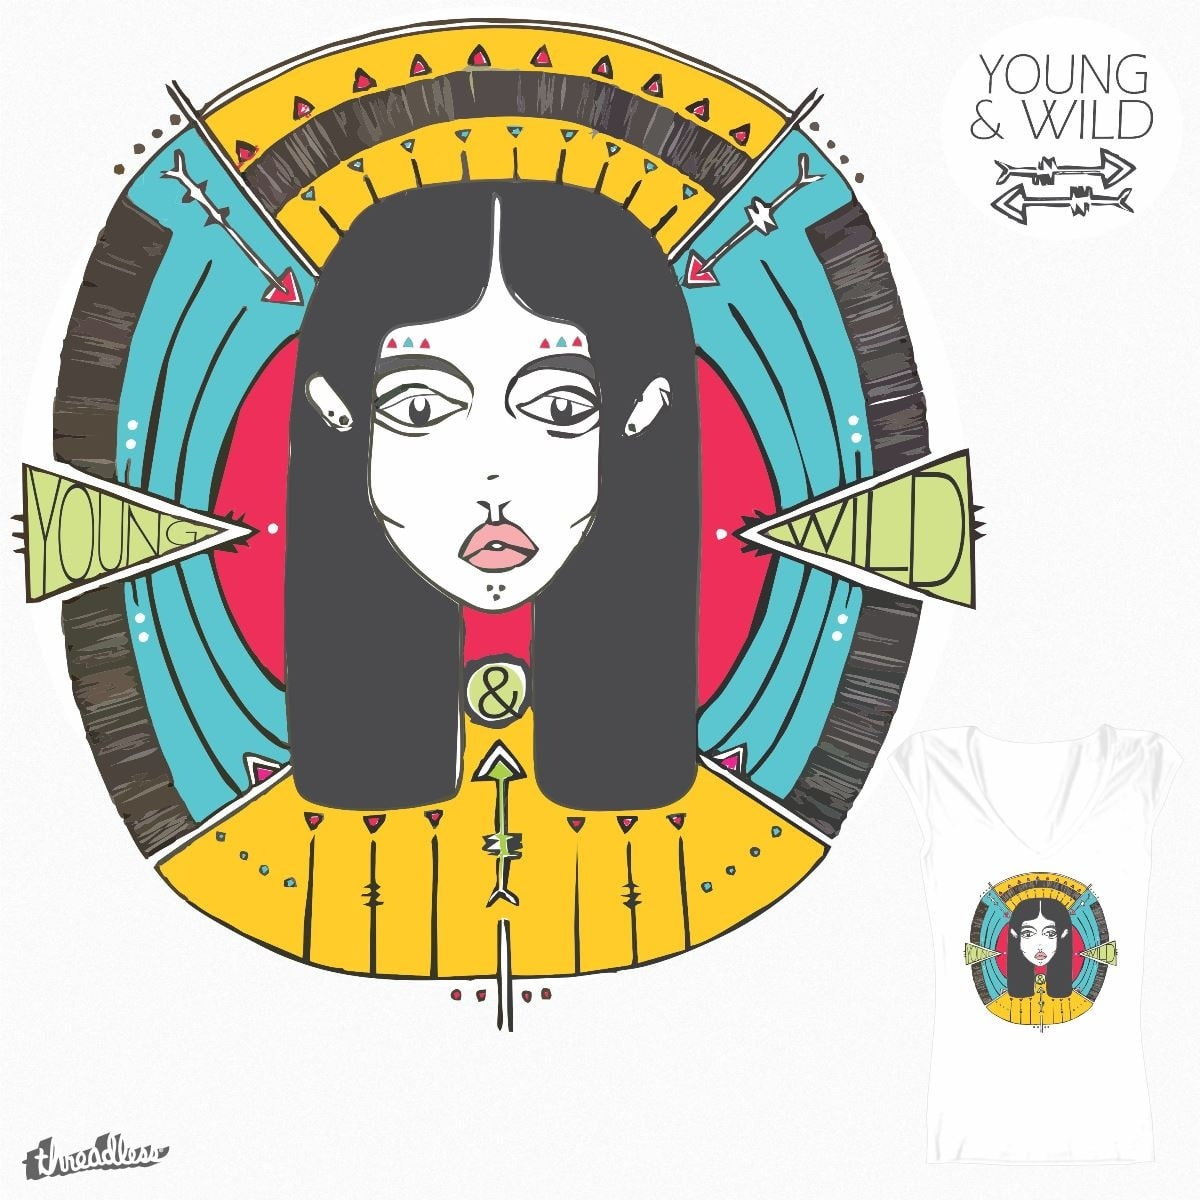 Young&Wild. by thootha on Threadless